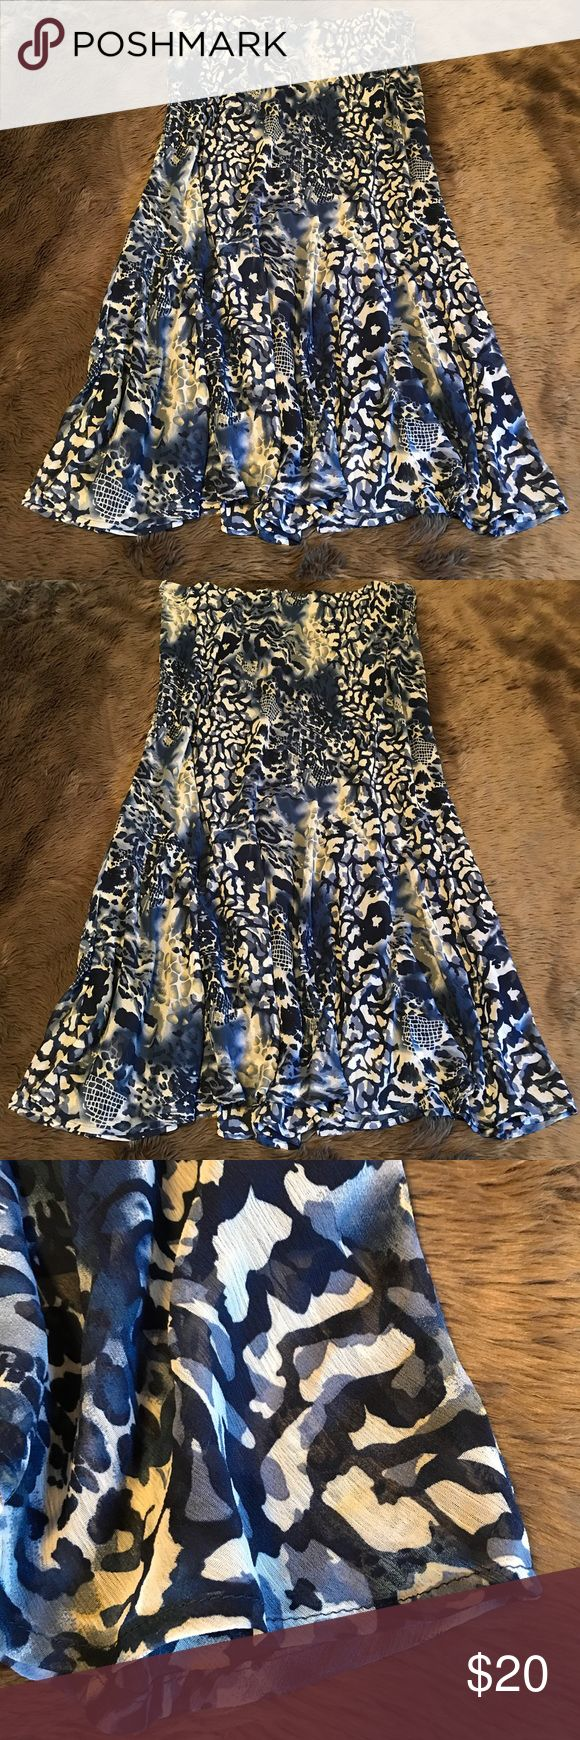 .:ASHLEY STEWART SKATER SKIRT, 24W:. Ashley Stewart skirt, size 24w. Flow he maxi style skater skirt in great condition. Zoo safari animal print pattern in bright blue and white. Skirt does have a few teeny tiny snags as pictured. They are so small I did not even notice until taking the photos! Waist band is elastic & has stretch and is not worn out at all. Happy poshing! ❤️ *plus size *career wear *wear to work *casual Ashley Stewart Skirts Circle & Skater